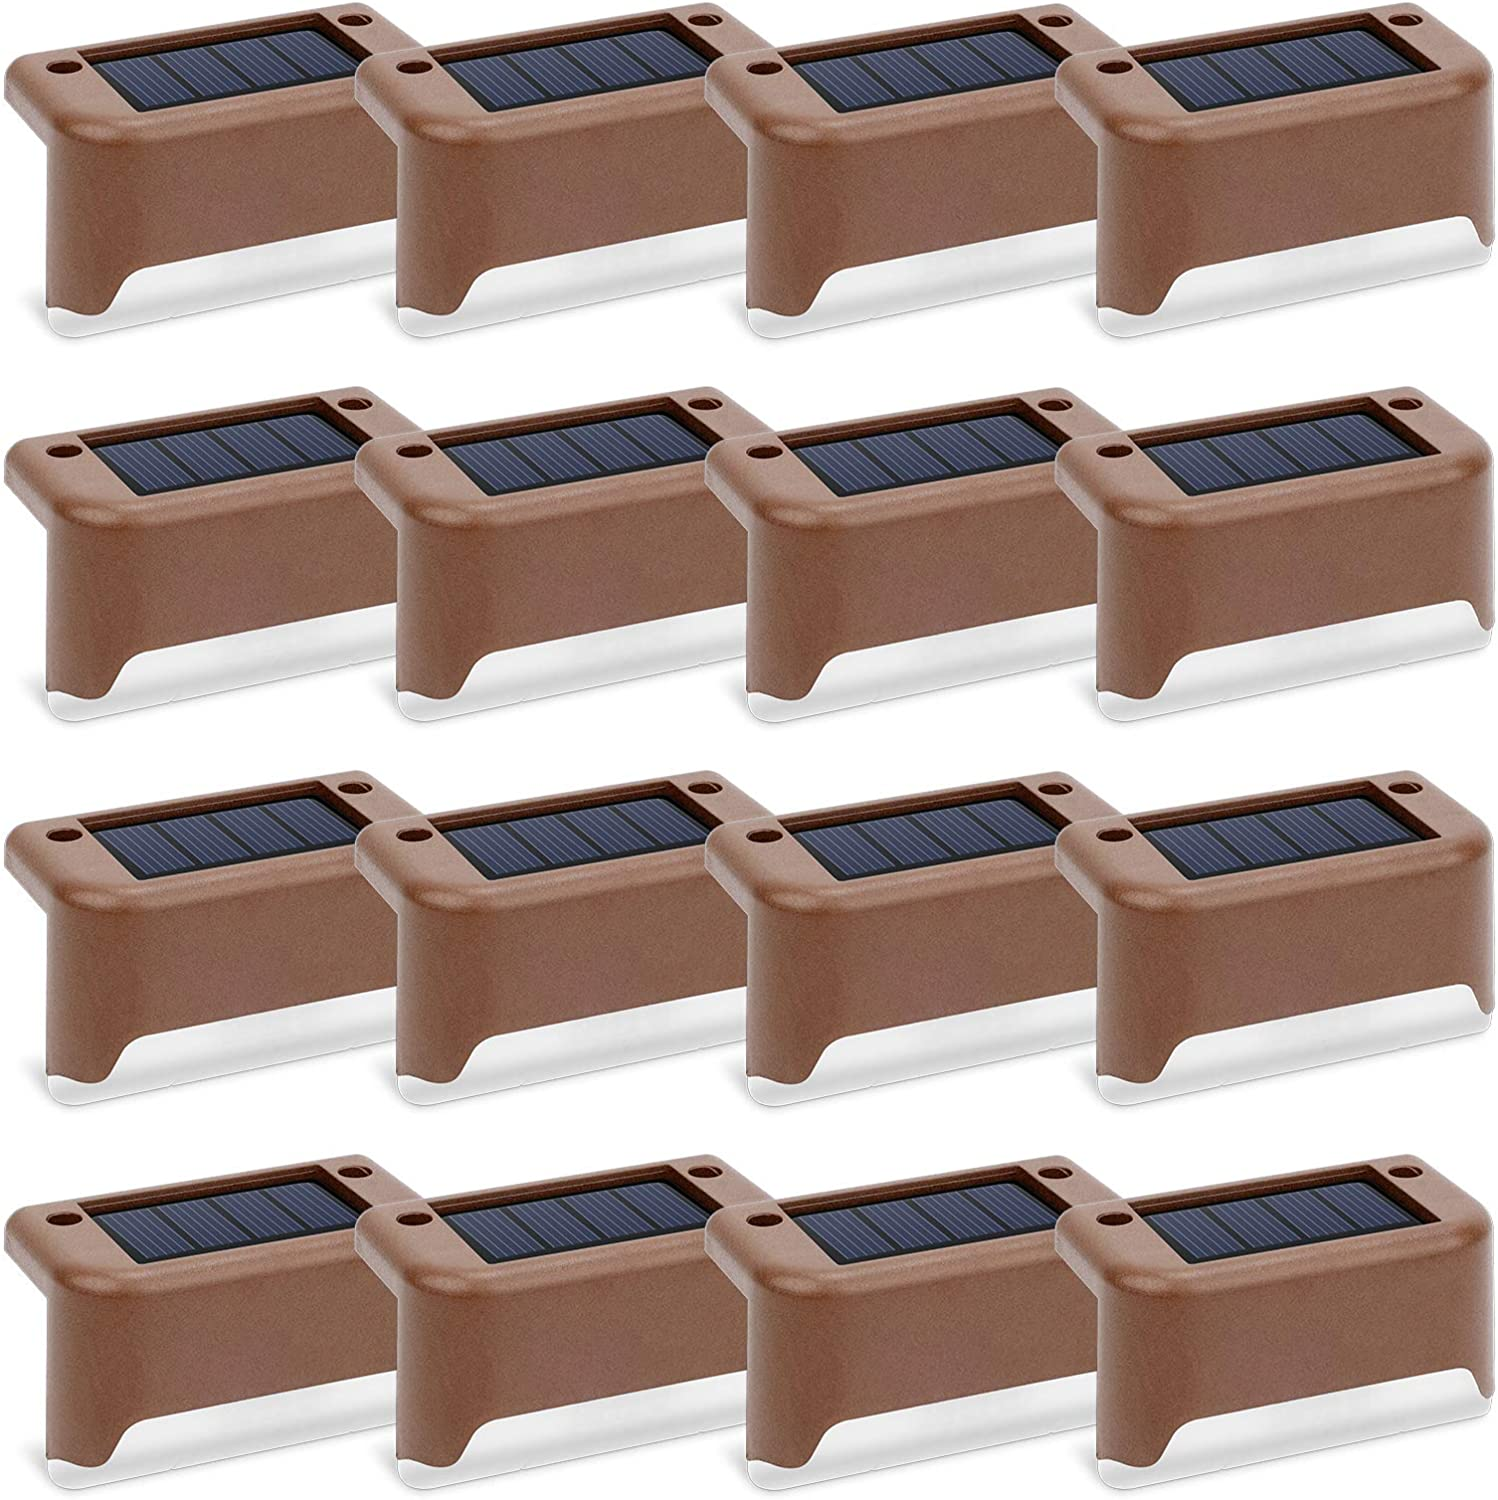 Solar Deck Lights NEW 16 Pcs Outdoor Step L Waterproof Genuine Free Shipping